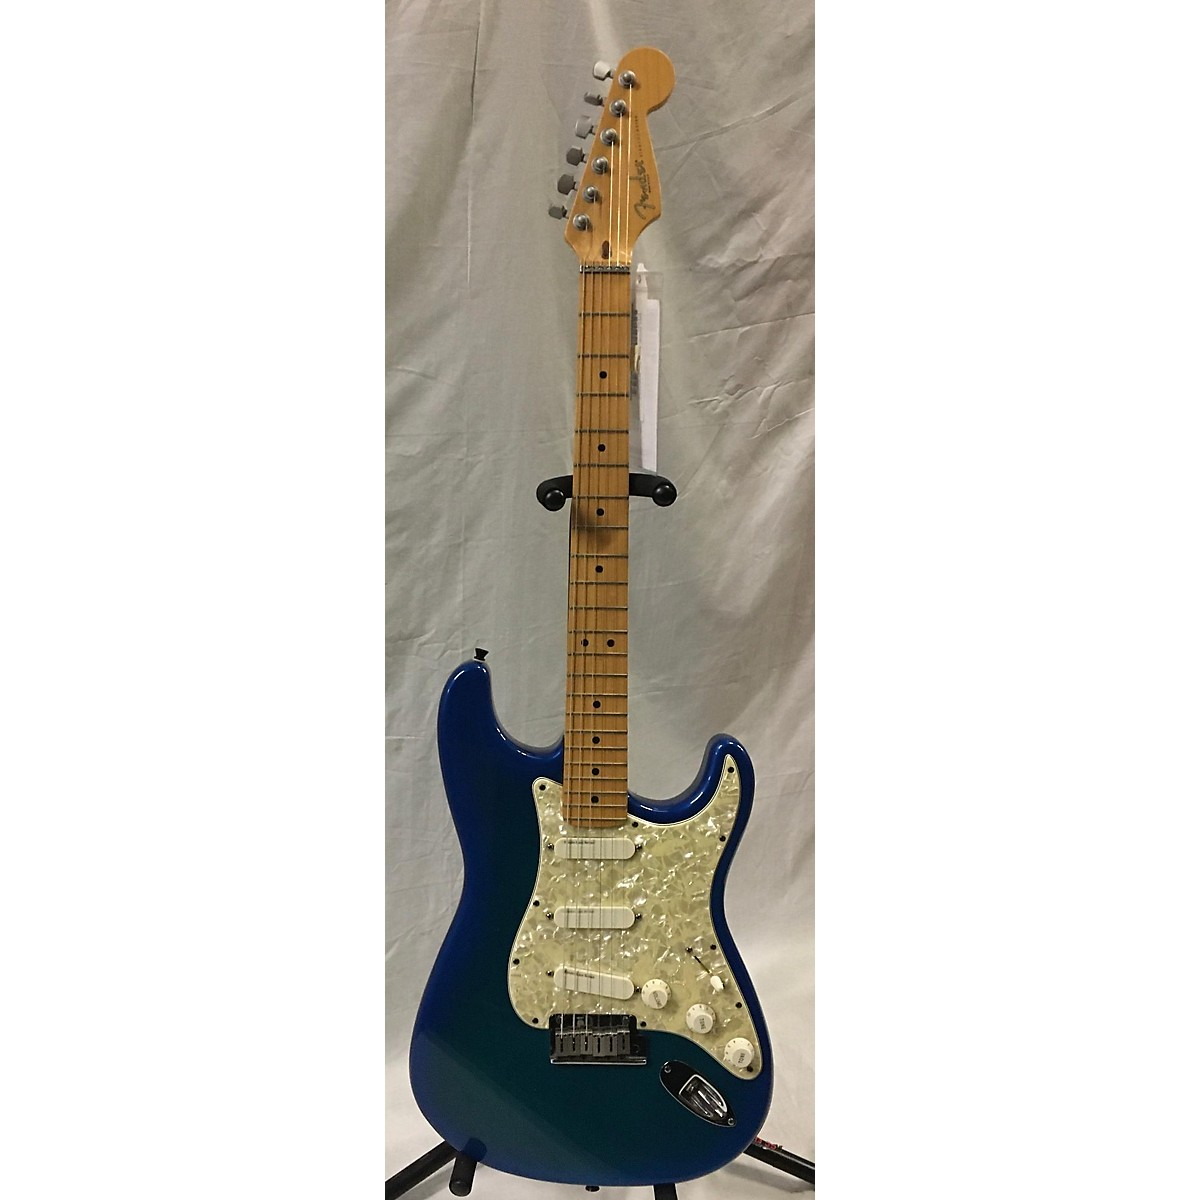 Fender 1995 Stratocaster Plus Deluxe Solid Body Electric Guitar